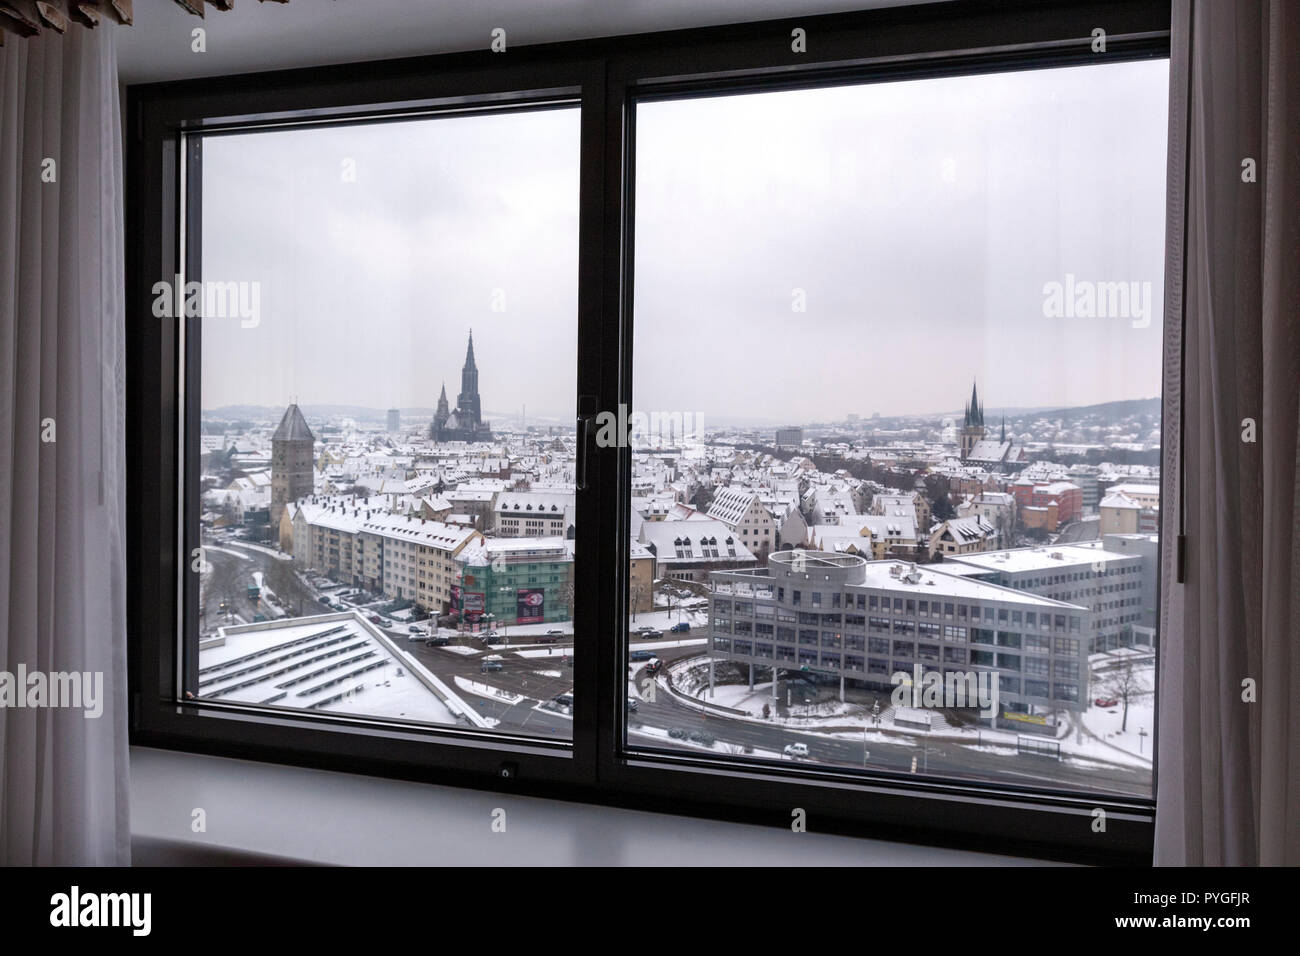 Snow winter view of Ulm from Maritim Hotel with the Ulm Minstert, Baden-Württemberg, Germany, Stock Photo